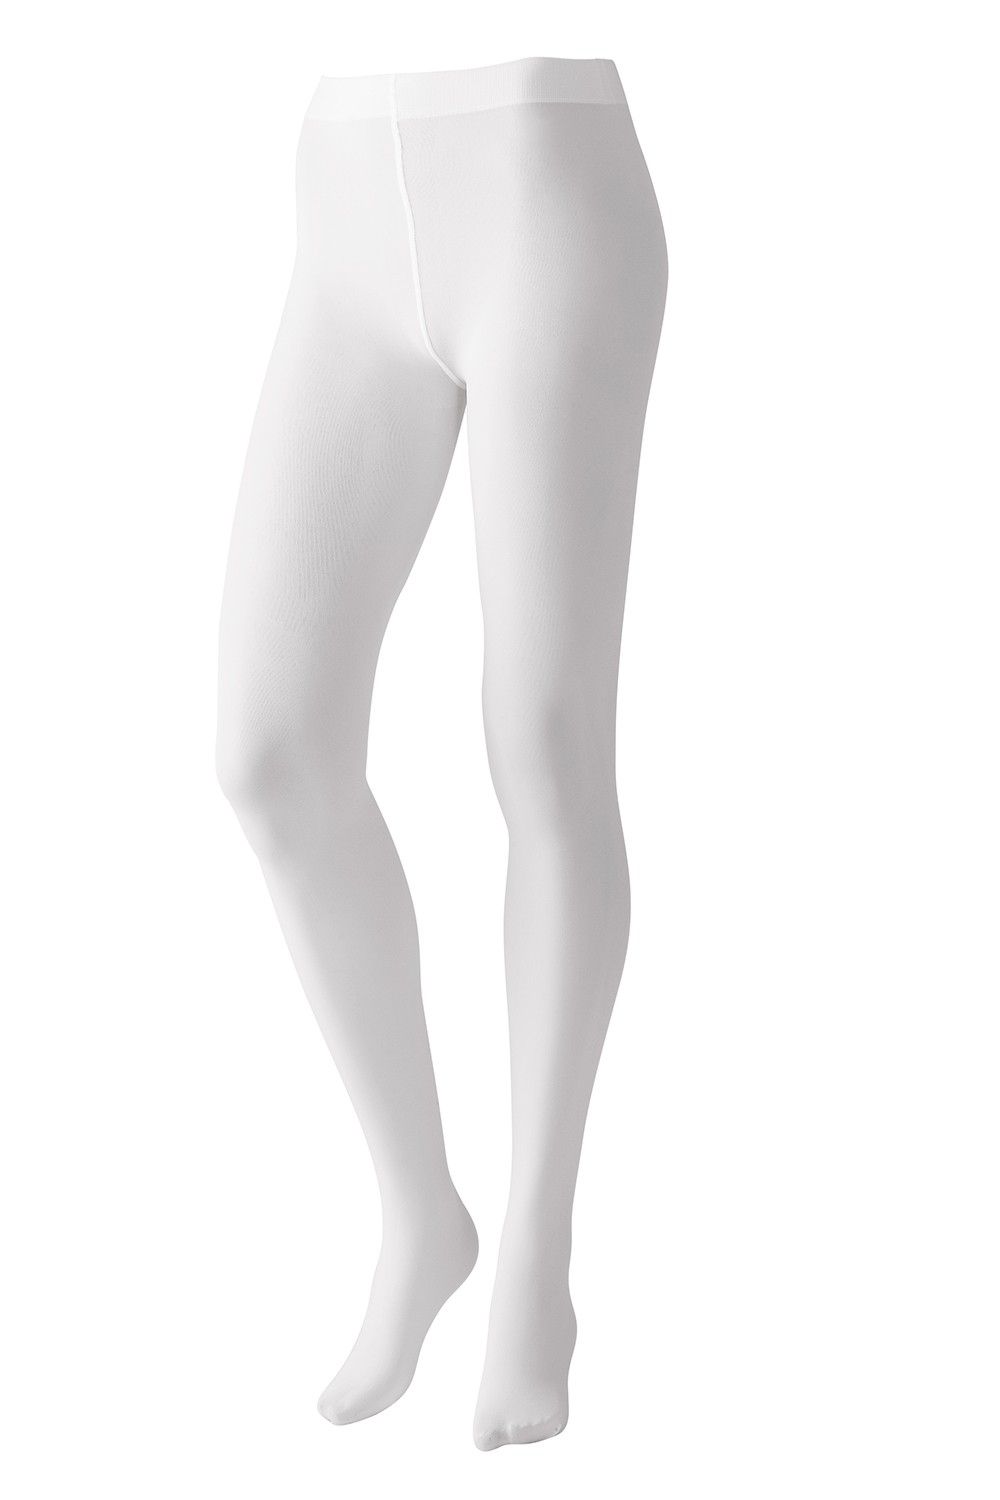 Footed Microfibre Bloch Tight Women's Dance Tights